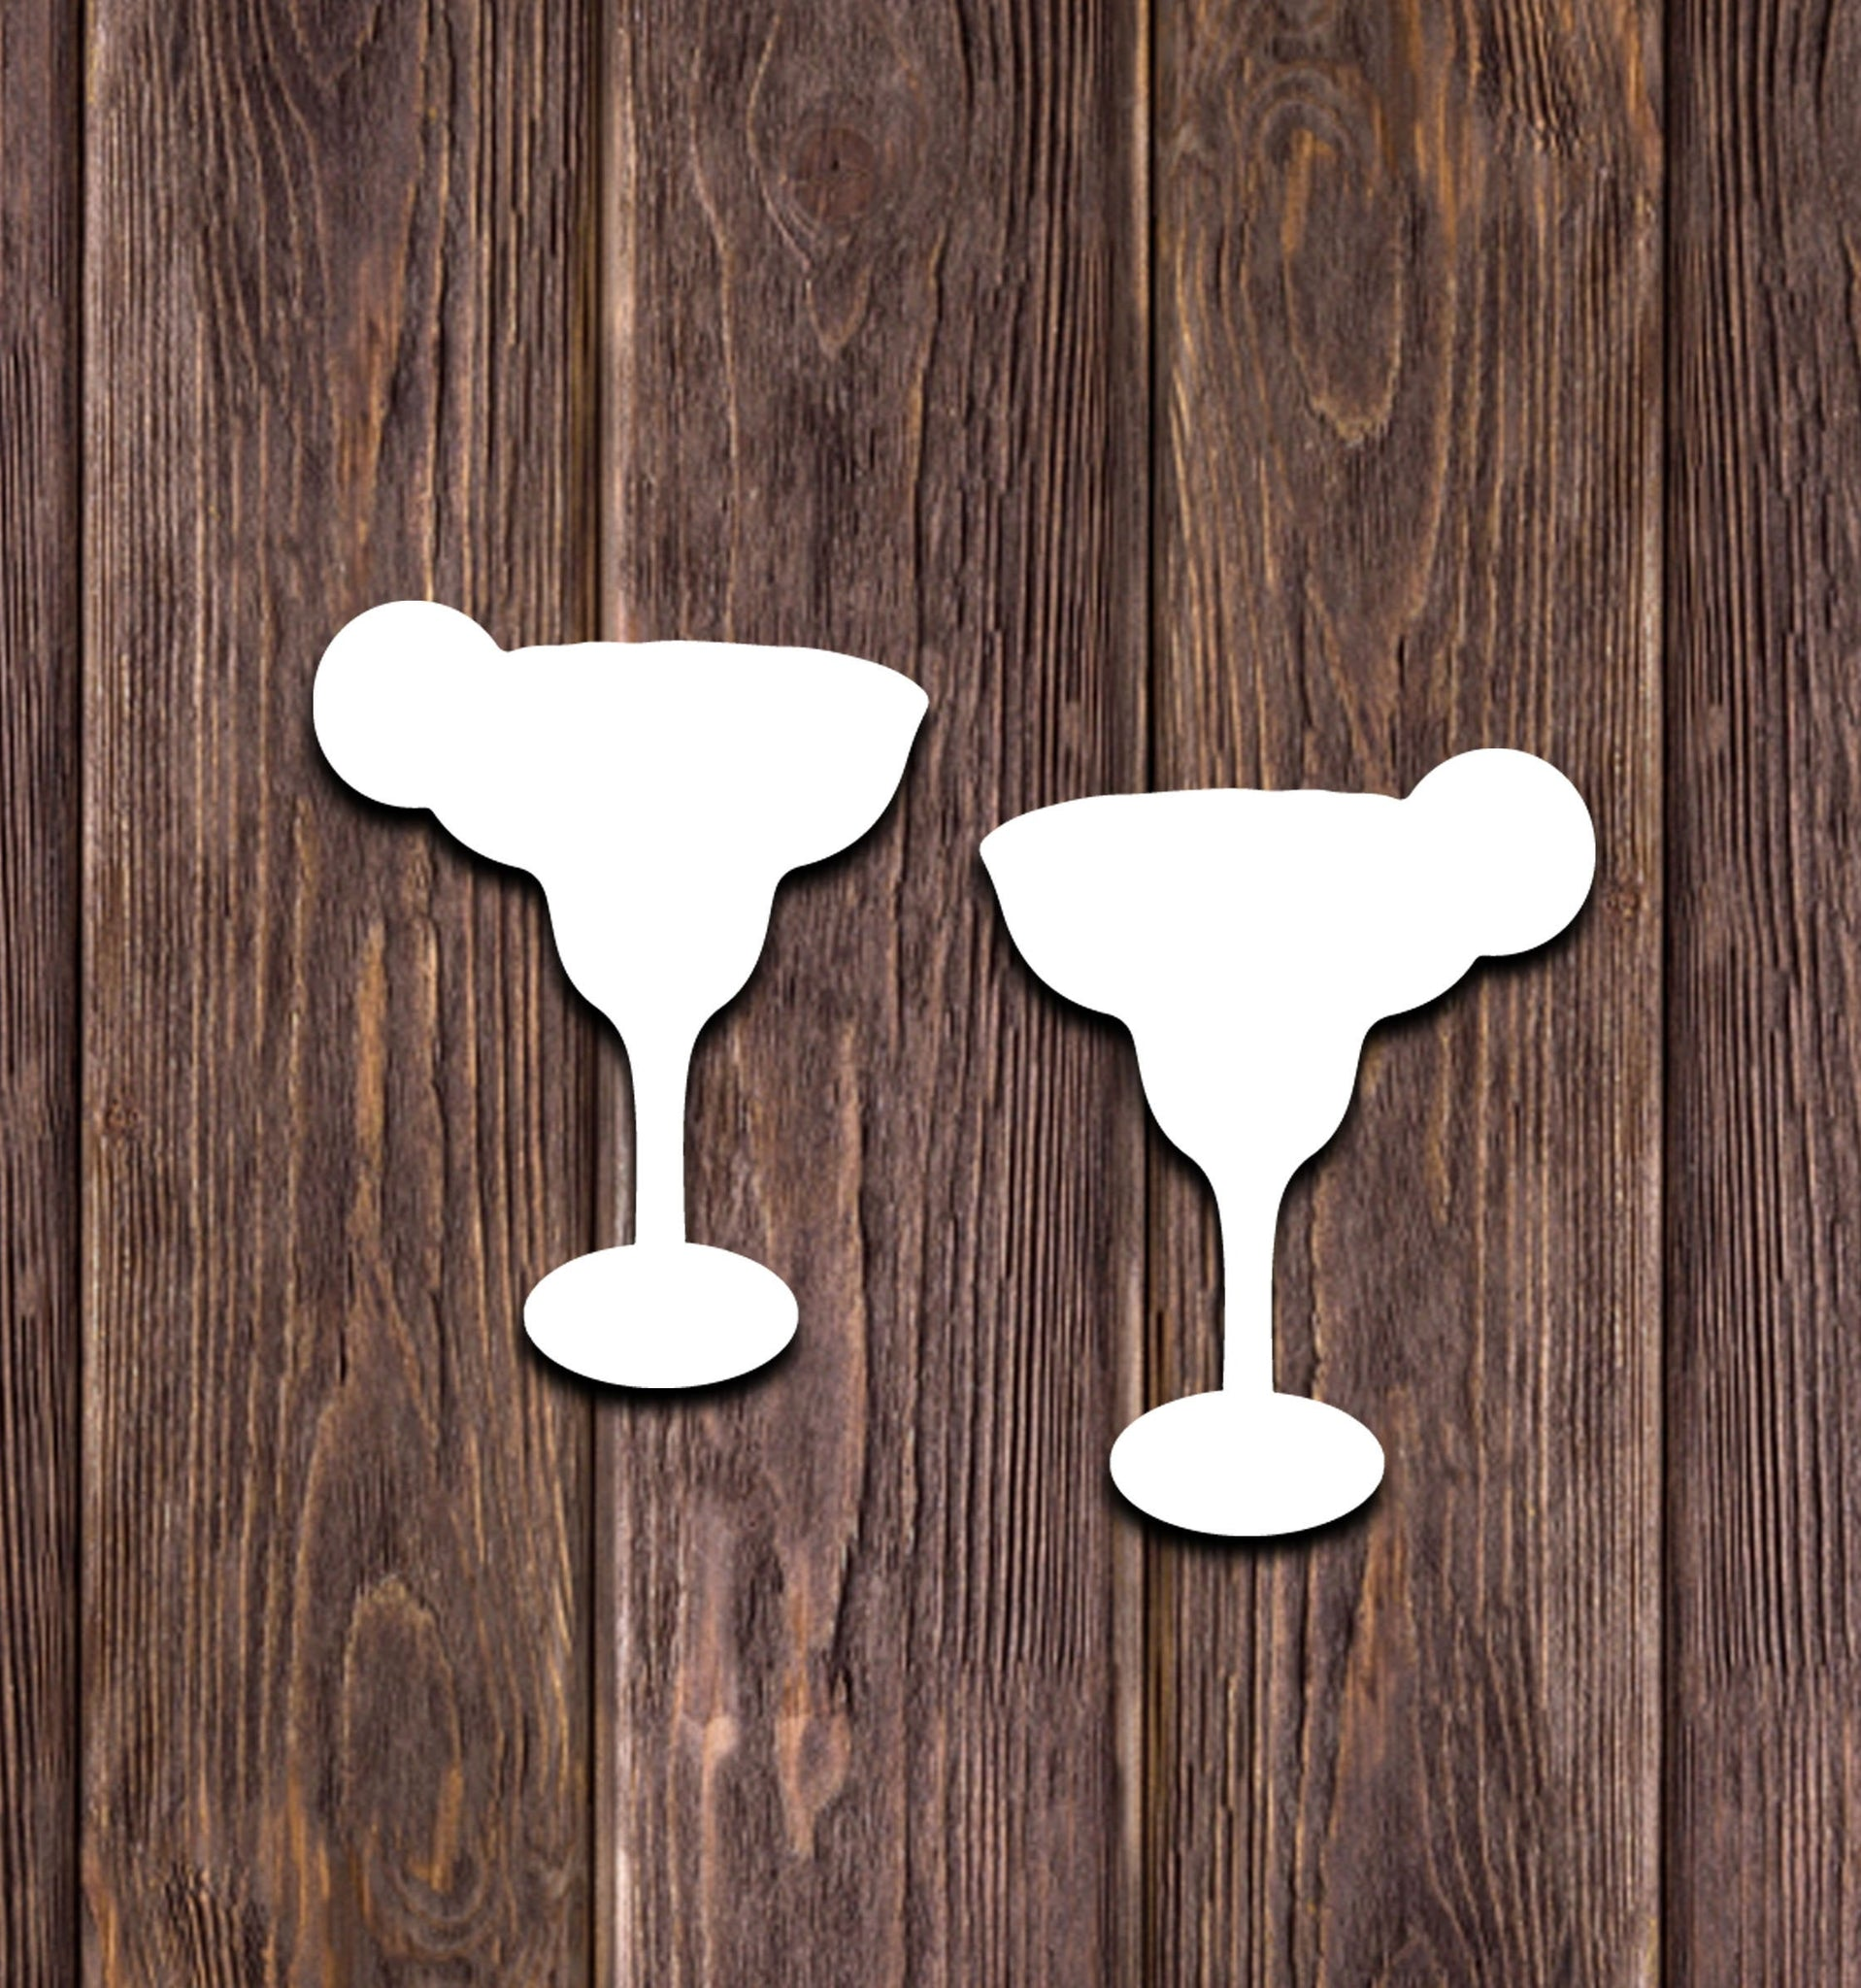 Sublimation hardboard blanks, margarita glass earring sublimation, SINGLE or DOUBLE-sided margarita shape earring blanks for sublimation